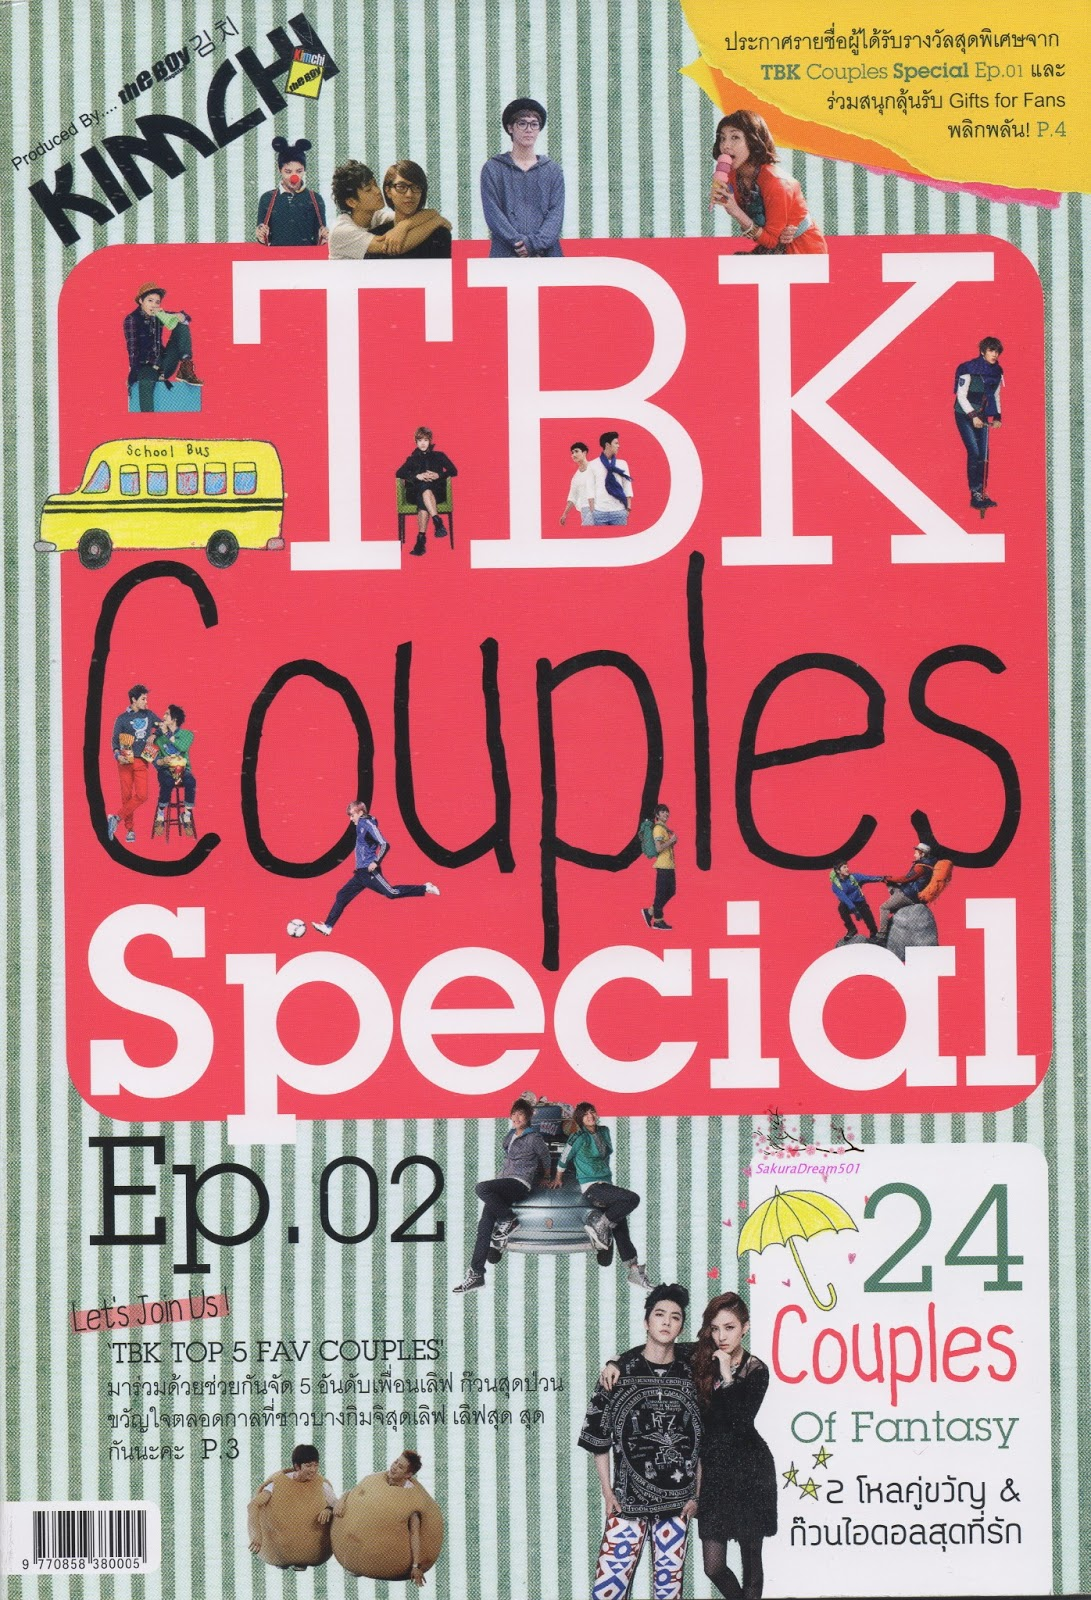 2556 06 26 14 07 53 0001 [Scan] Kim Kyu Jong & Heo Young Saeng   Featured on TBK Couples Special Ep.02 (Thai Magazine)